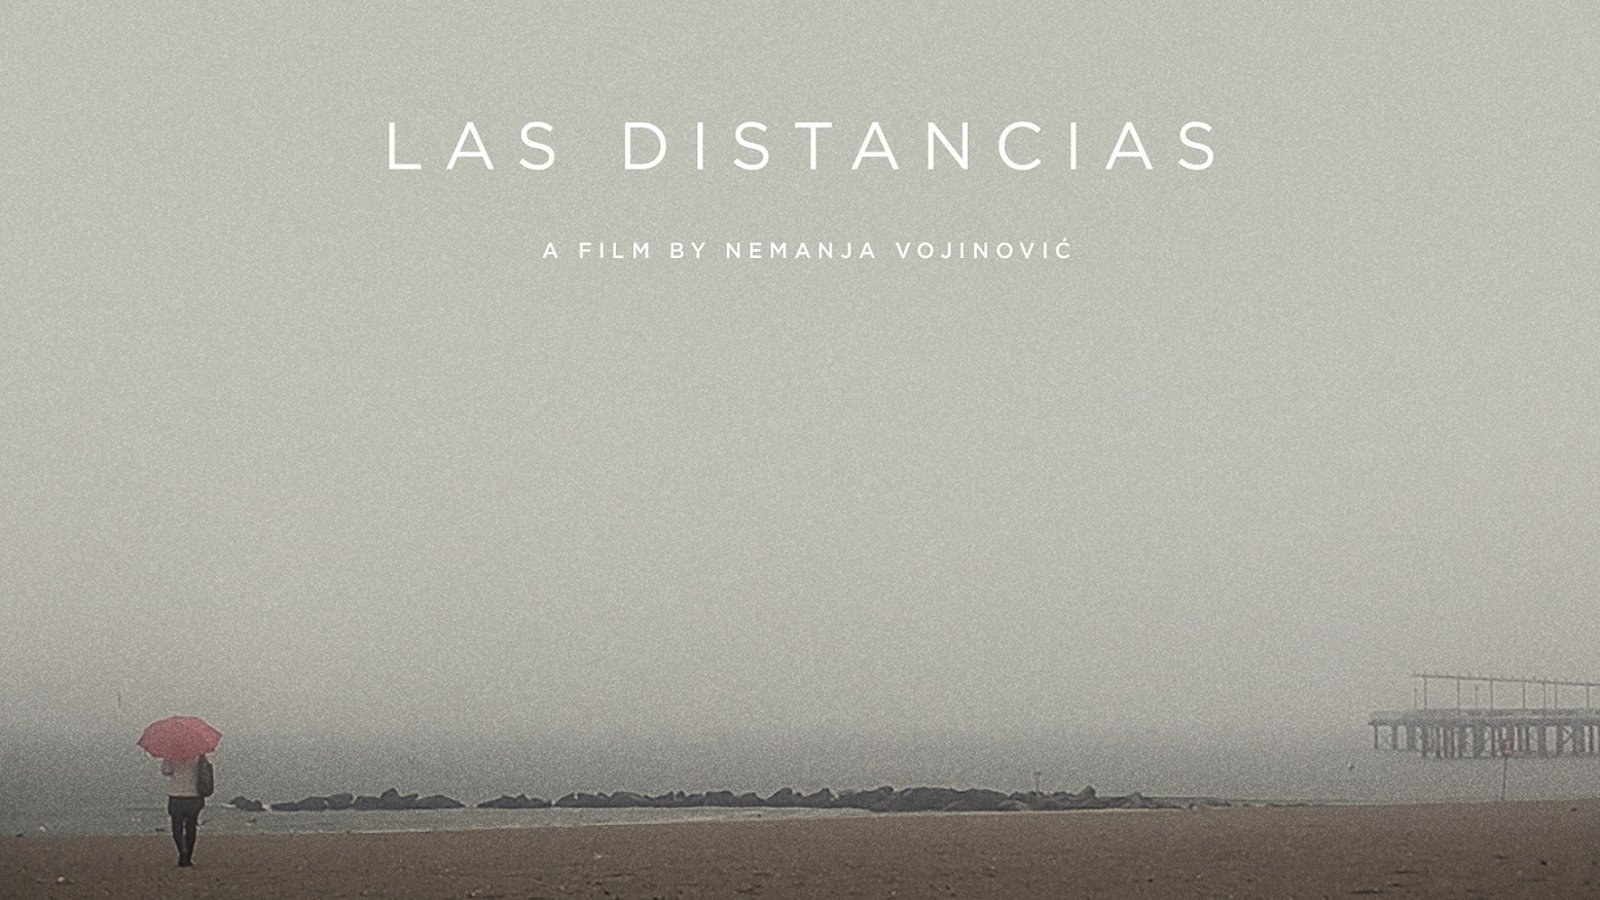 The Distances (Las Distancias) - A Cuban Actress in Search of the American Dream